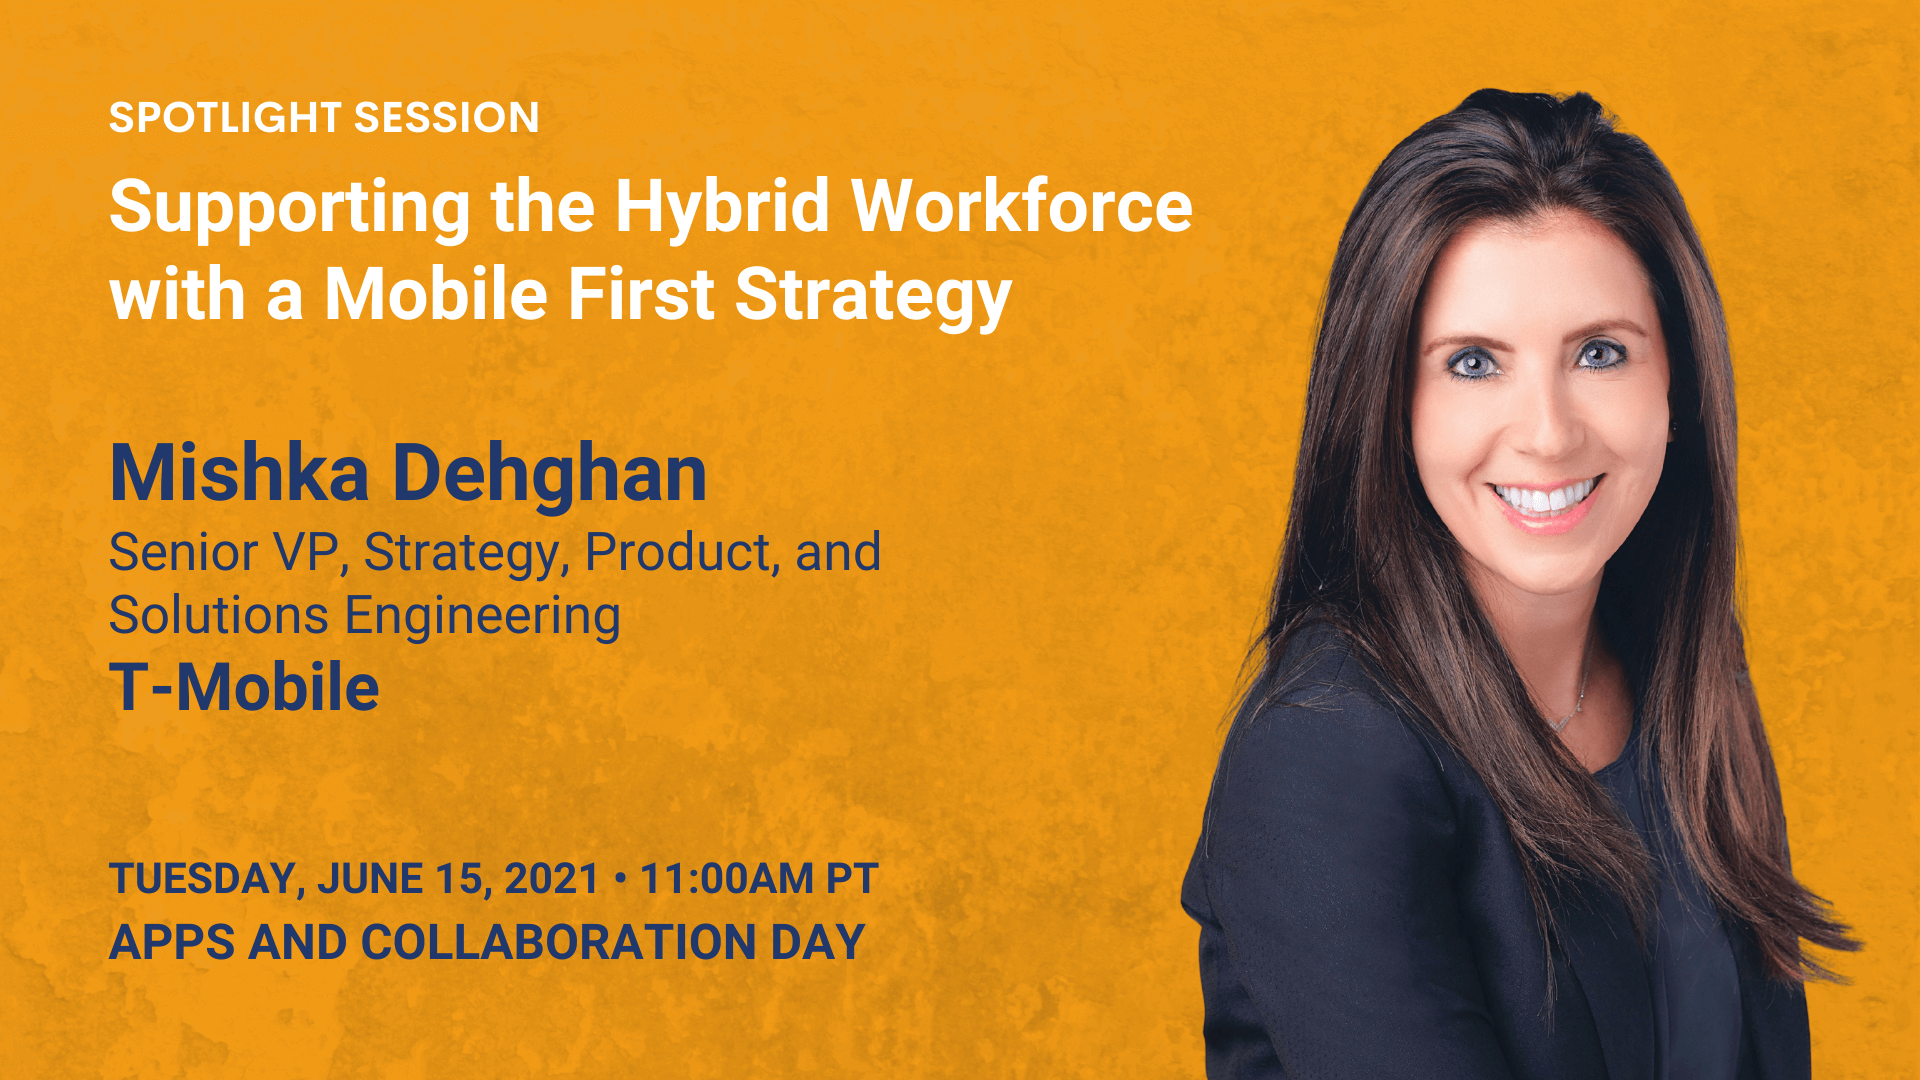 Supporting the Hybrid Workforce with a Mobile First Strategy (Mishka Dehghan)